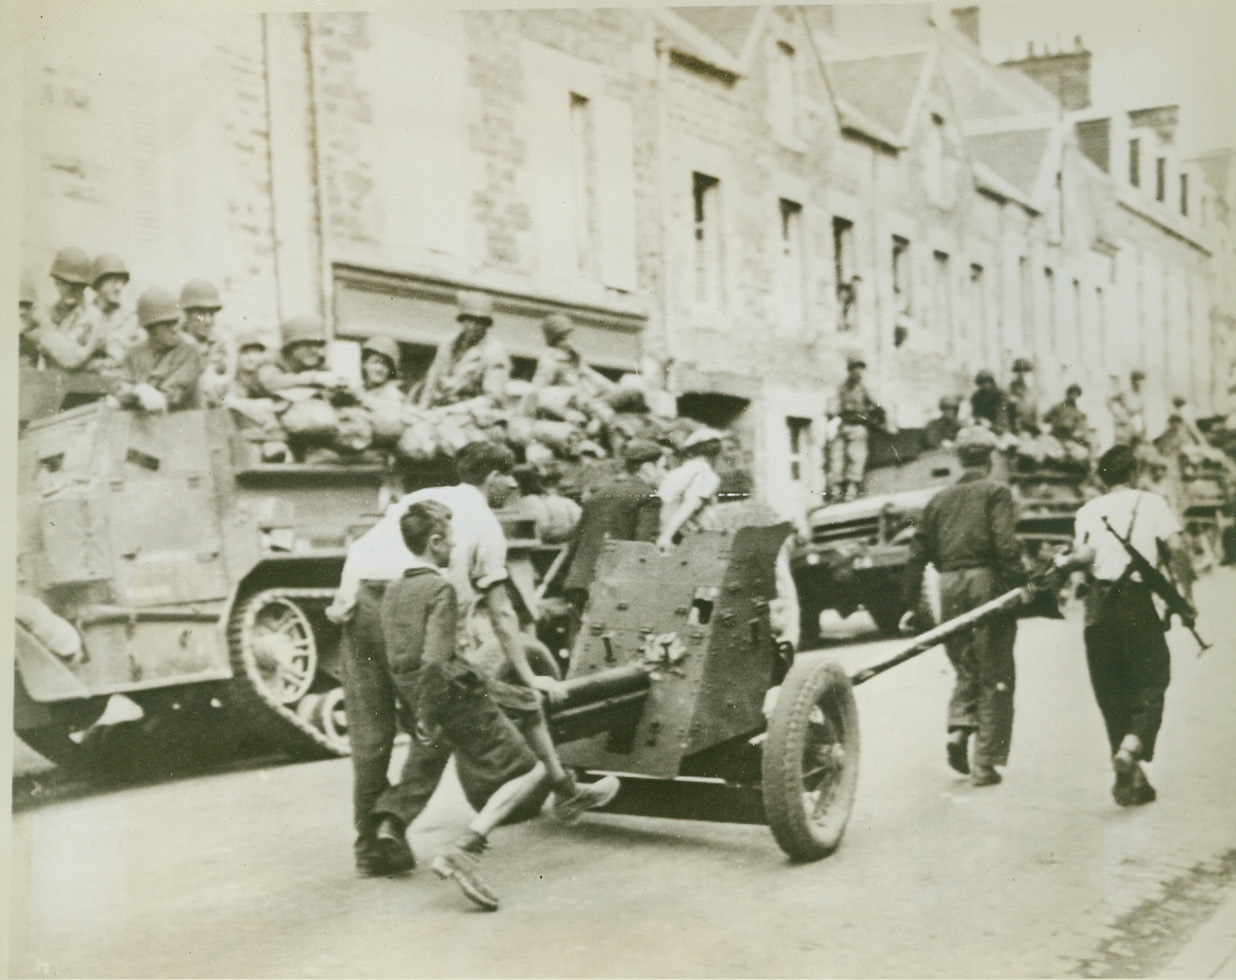 Frenchmen Retrieve German Gun, 8/4/1944. France—As American and Allied forces watch from trucks at the side of the road, civilians of Brehal, France, bring in German equipment left behind by the rapidly retreating Nazis. Little boy rides the barrel of a light infantry cannon being rolled through the town. Credit: Signal Corps radiotelephoto from ACME;